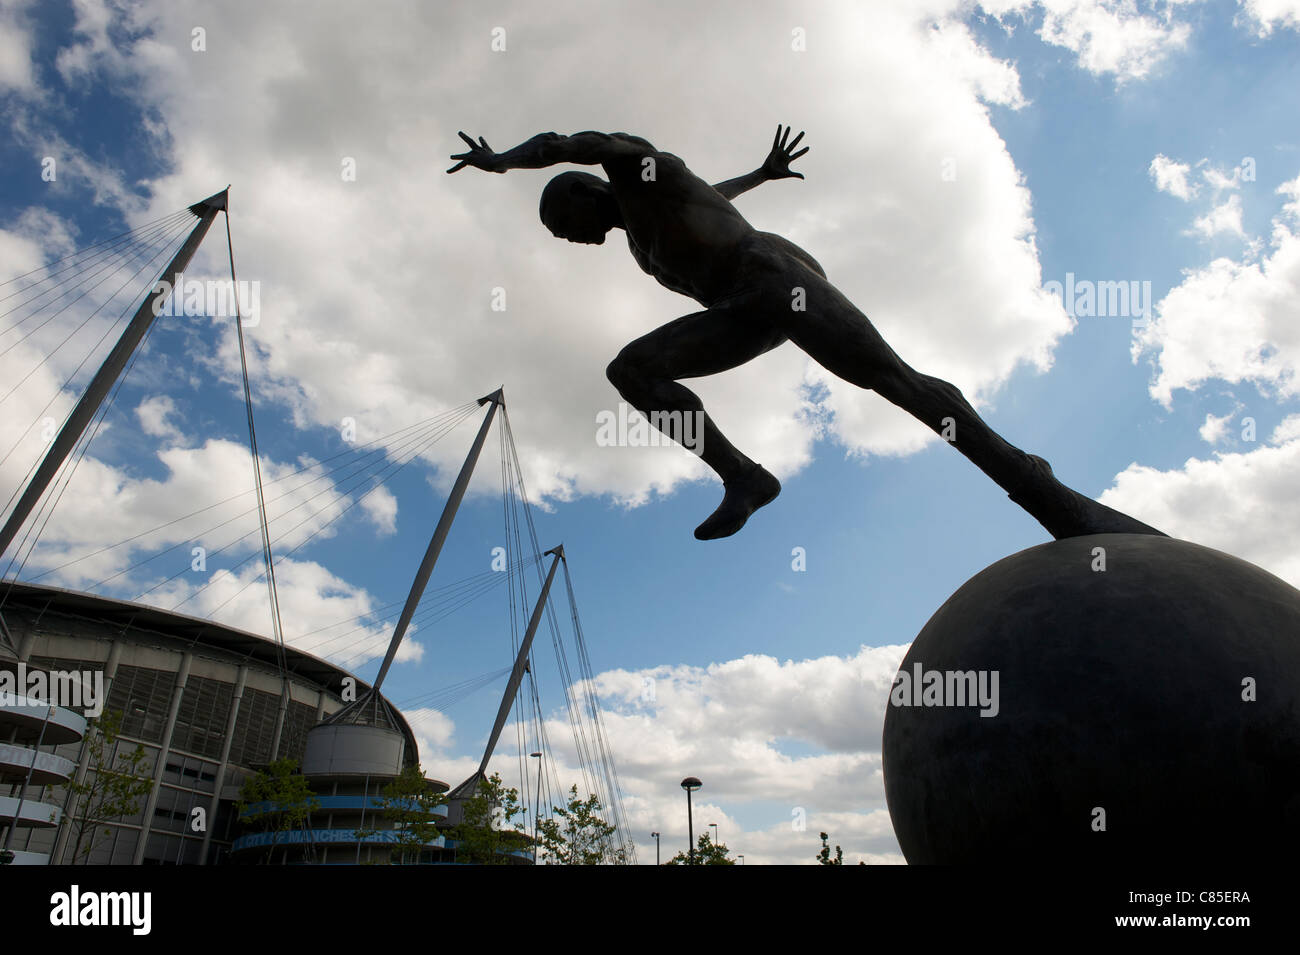 Colin Spofforth's bronze sculpture 'THE RUNNER' outside - CITY of Manchester STADIUM, ETIHAD STADIUM - Stock Image